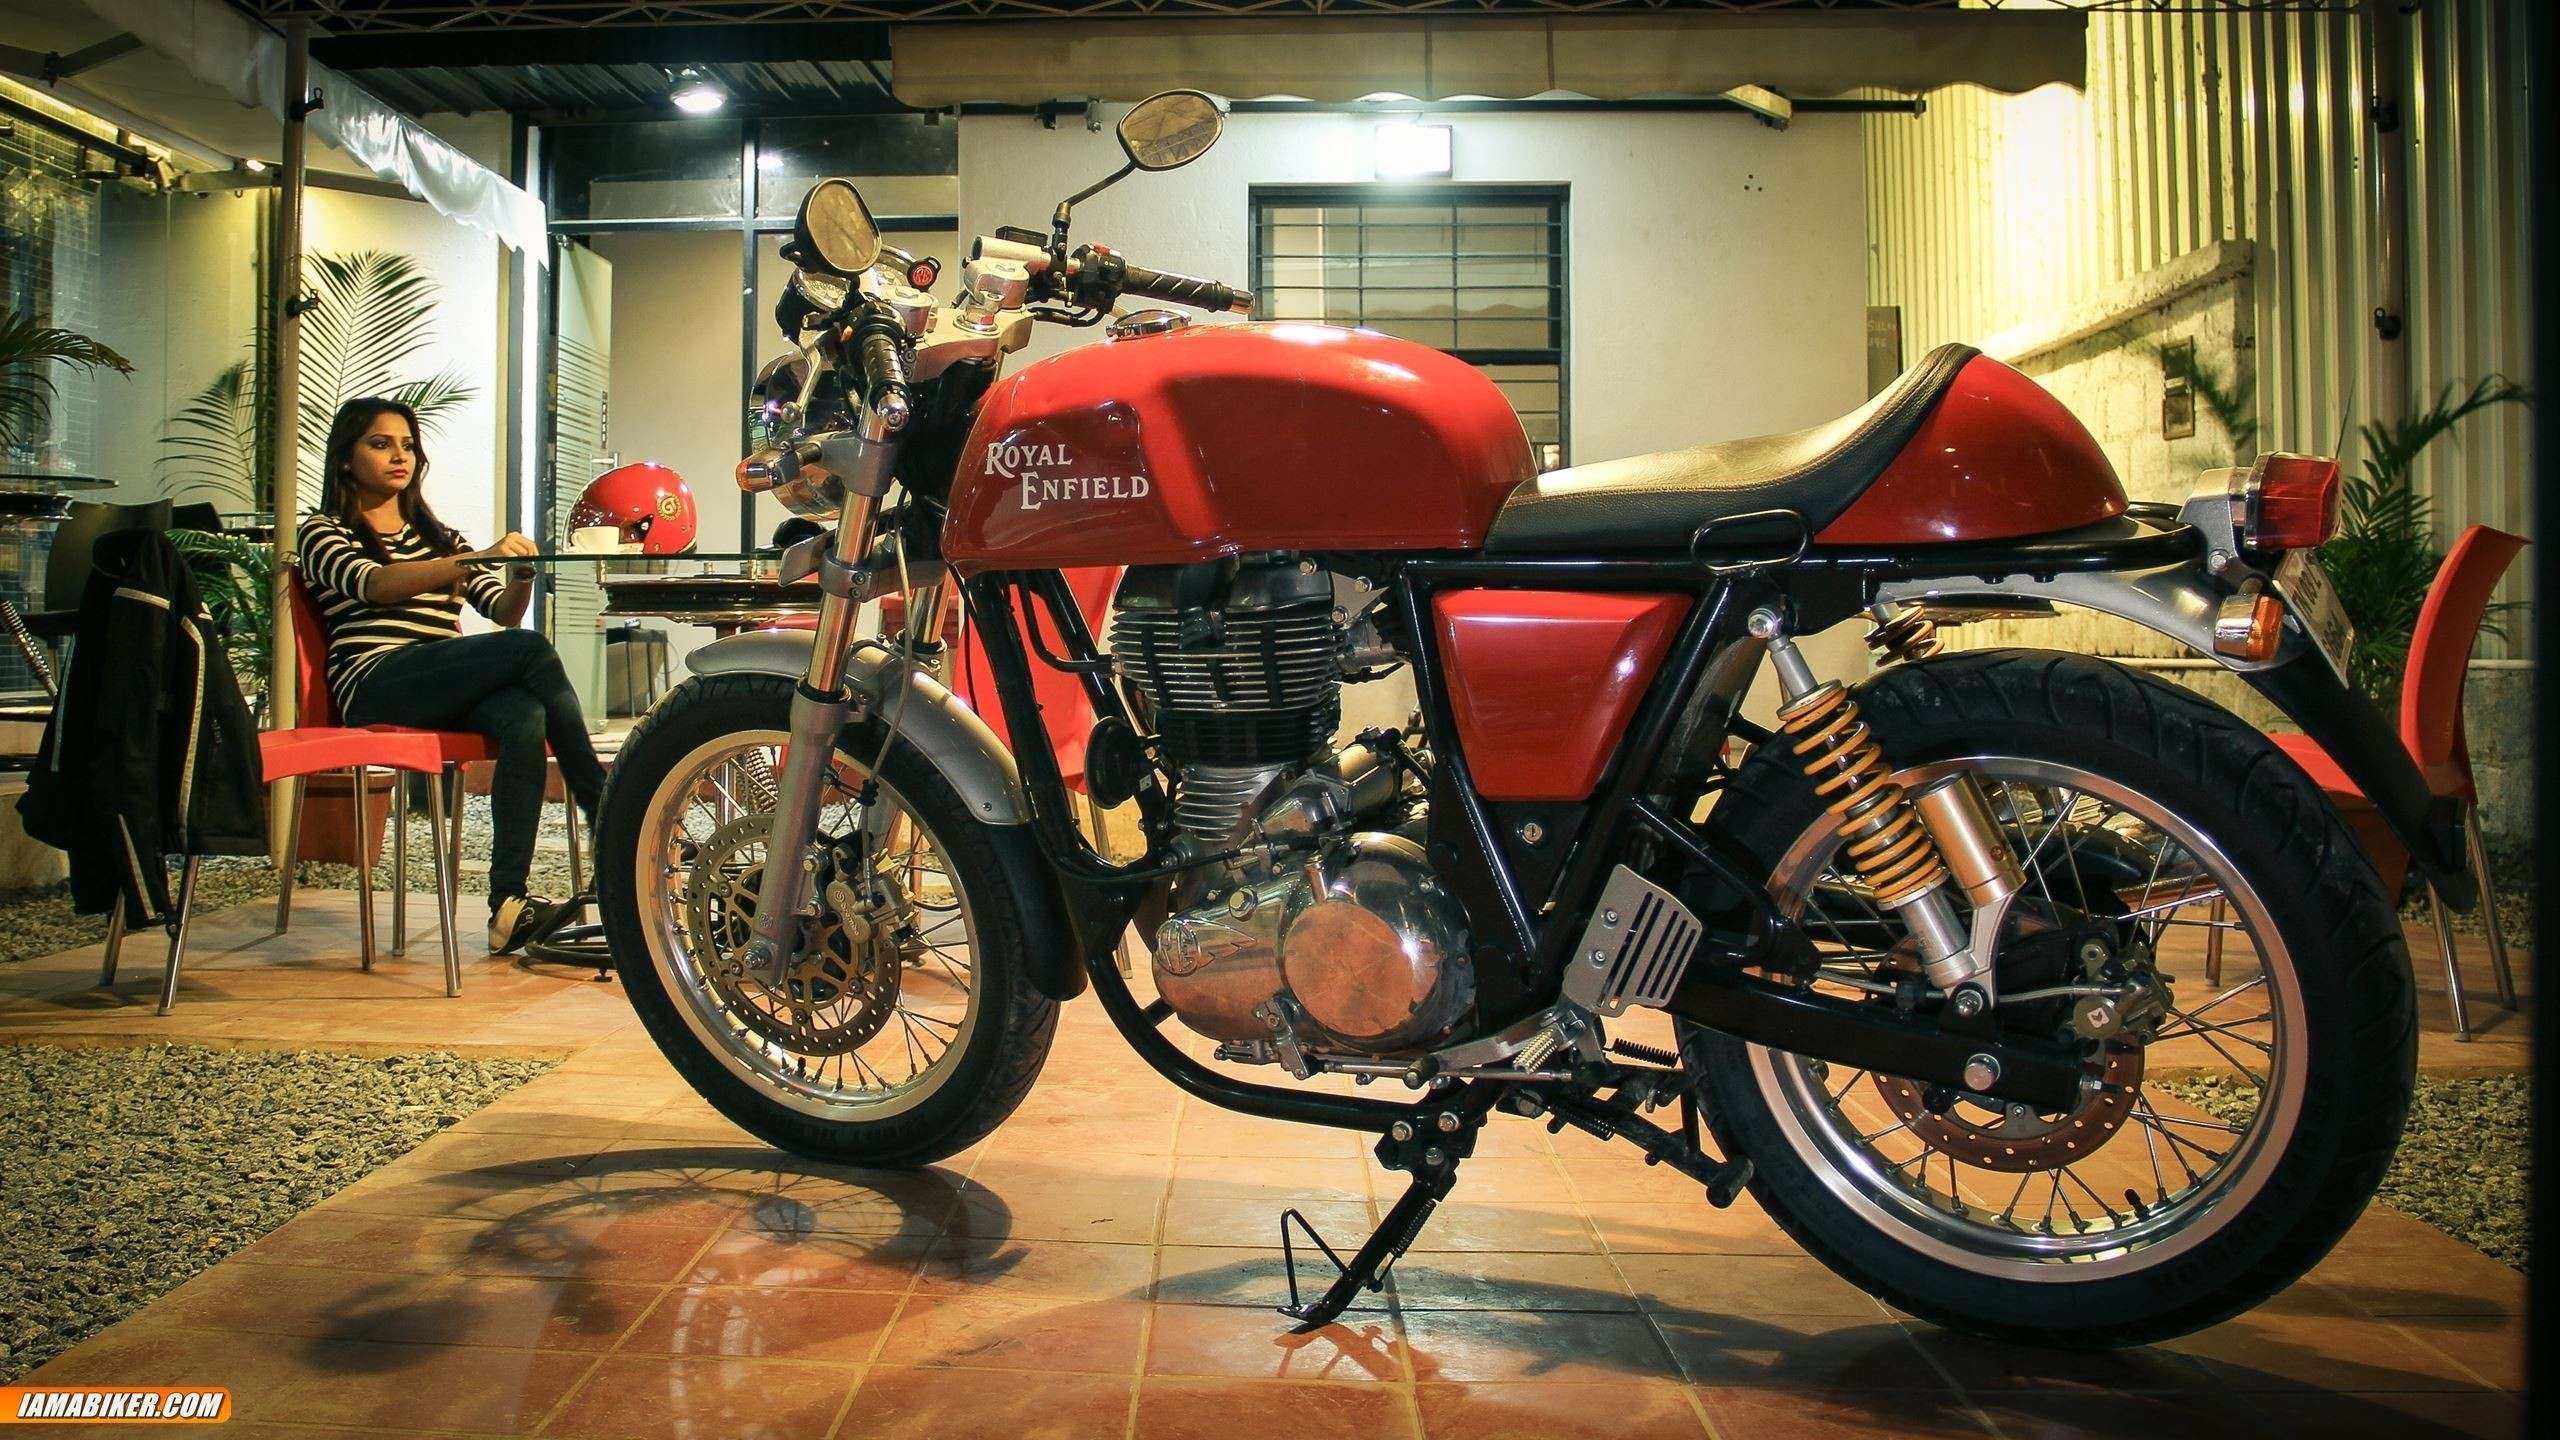 Royal Enfield Continental Gt Hd Wallpapers 01 Data Royal Enfield Continental Image Hd 2560x1440 Wallpaper Teahub Io